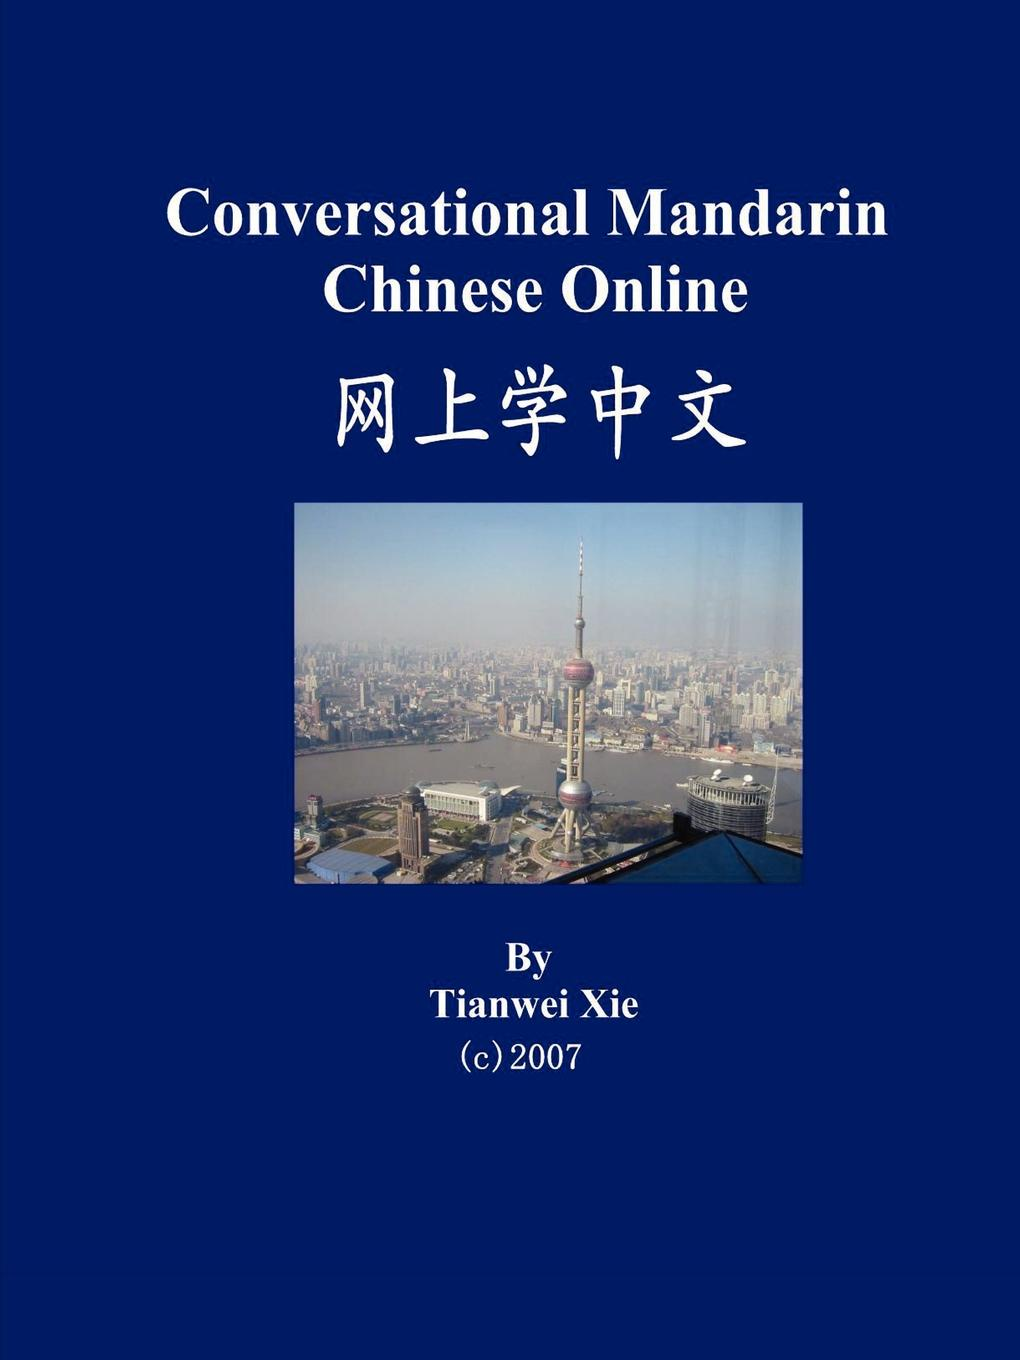 Tianwei Xie Conversational Mandarin Chinese Online (Simplified Character Version) chinese made easy for kids workbook 3 arabic edition simplified chinese version by yamin ma chinese study book for children